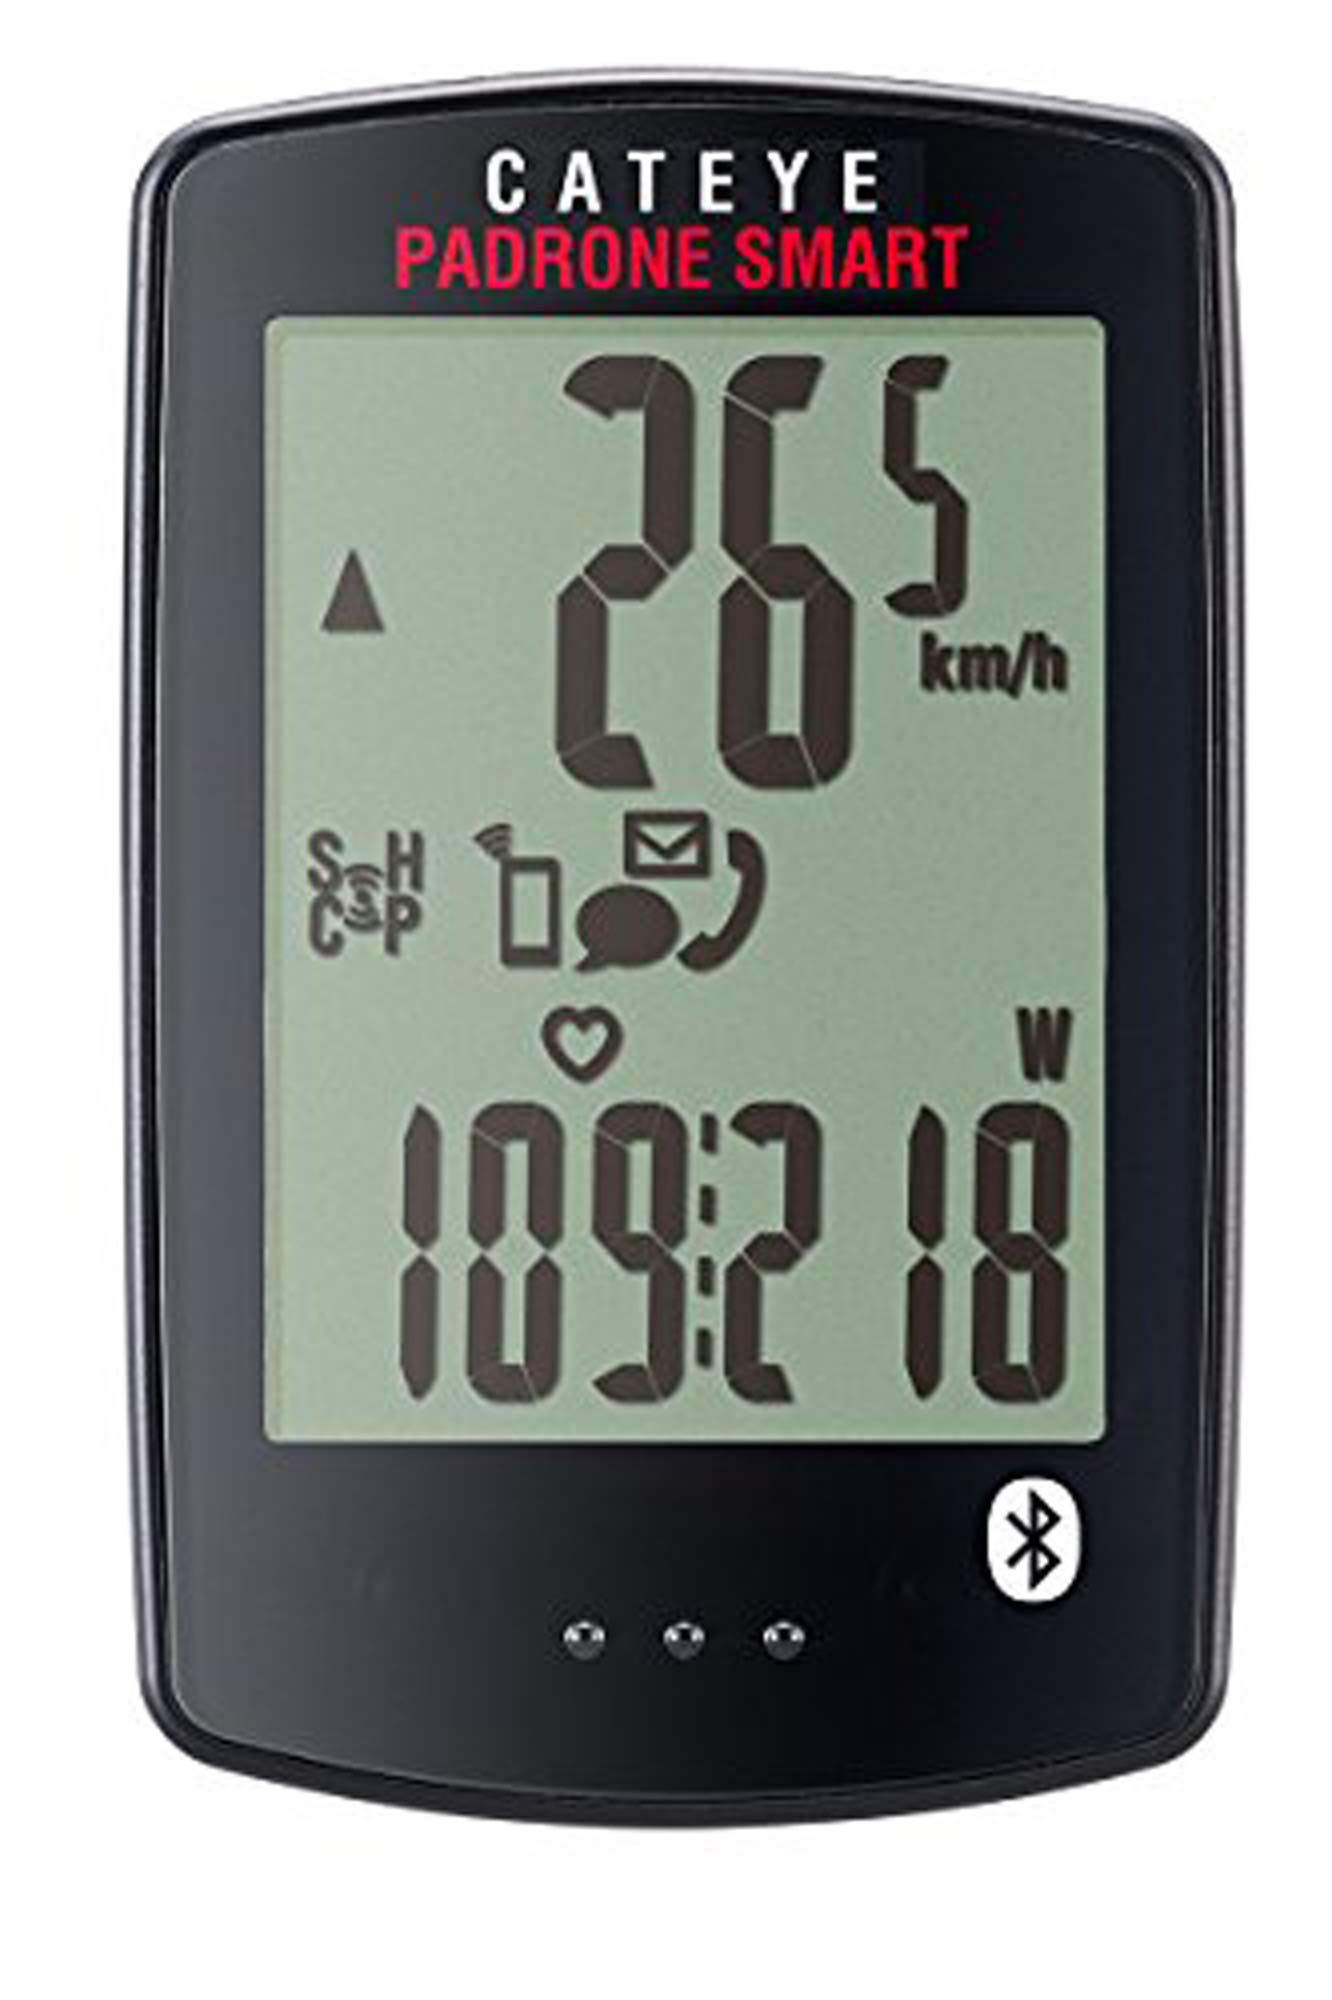 CAT EYE - Padrone Smart Wireless Bike Computer, Triple